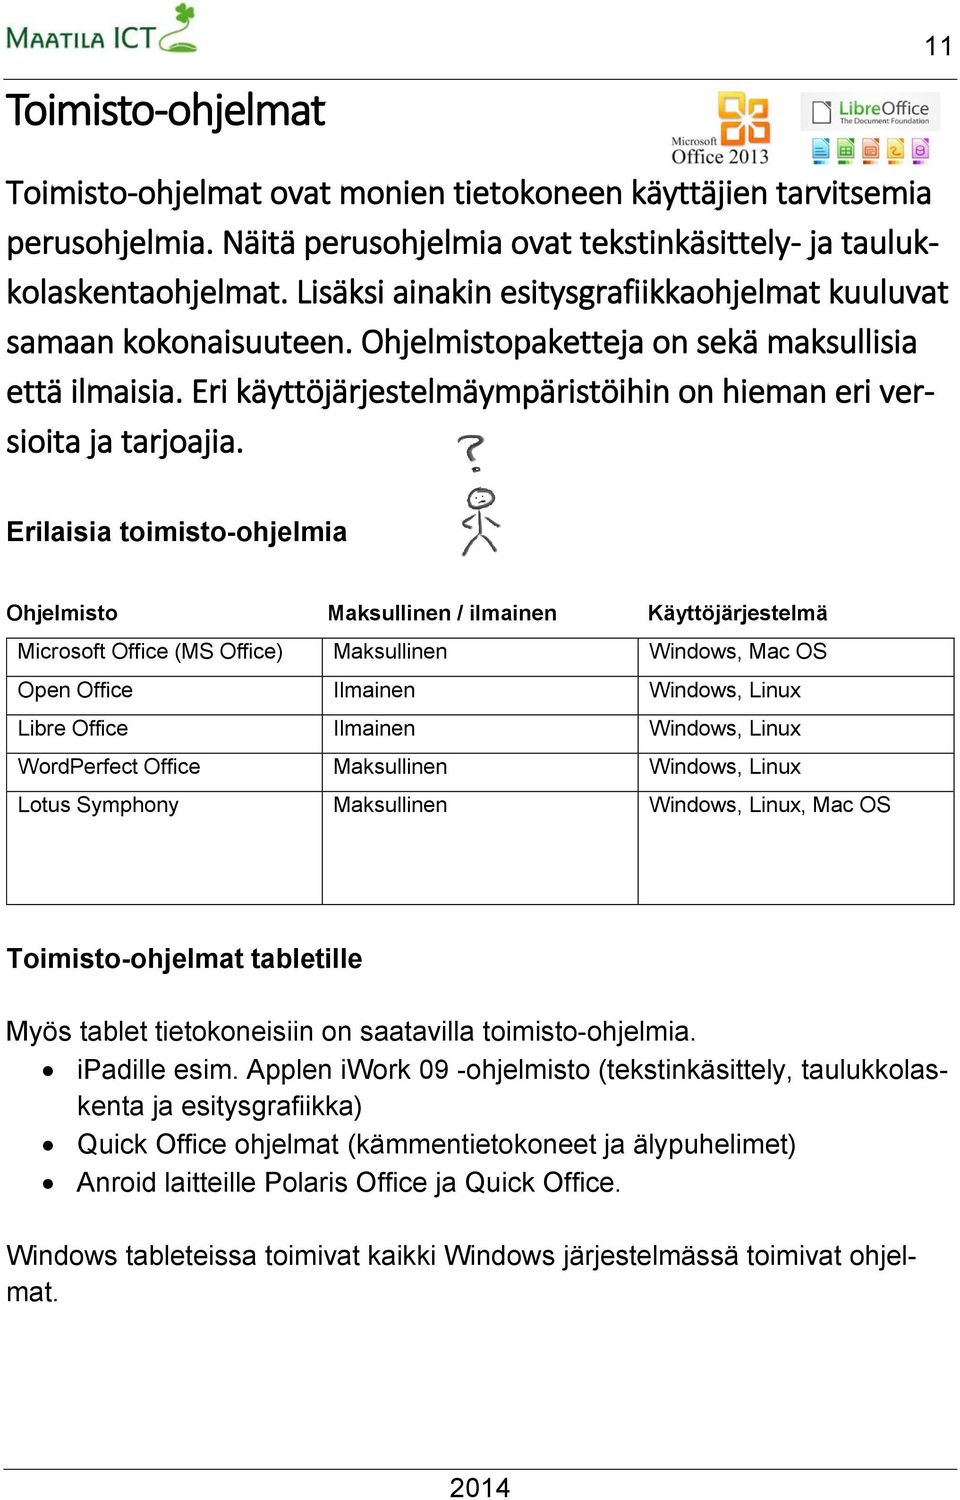 Erilaisia toimisto-ohjelmia Ohjelmisto Maksullinen / ilmainen Käyttöjärjestelmä Microsoft Office (MS Office) Maksullinen Windows, Mac OS Open Office Ilmainen Windows, Linux Libre Office Ilmainen